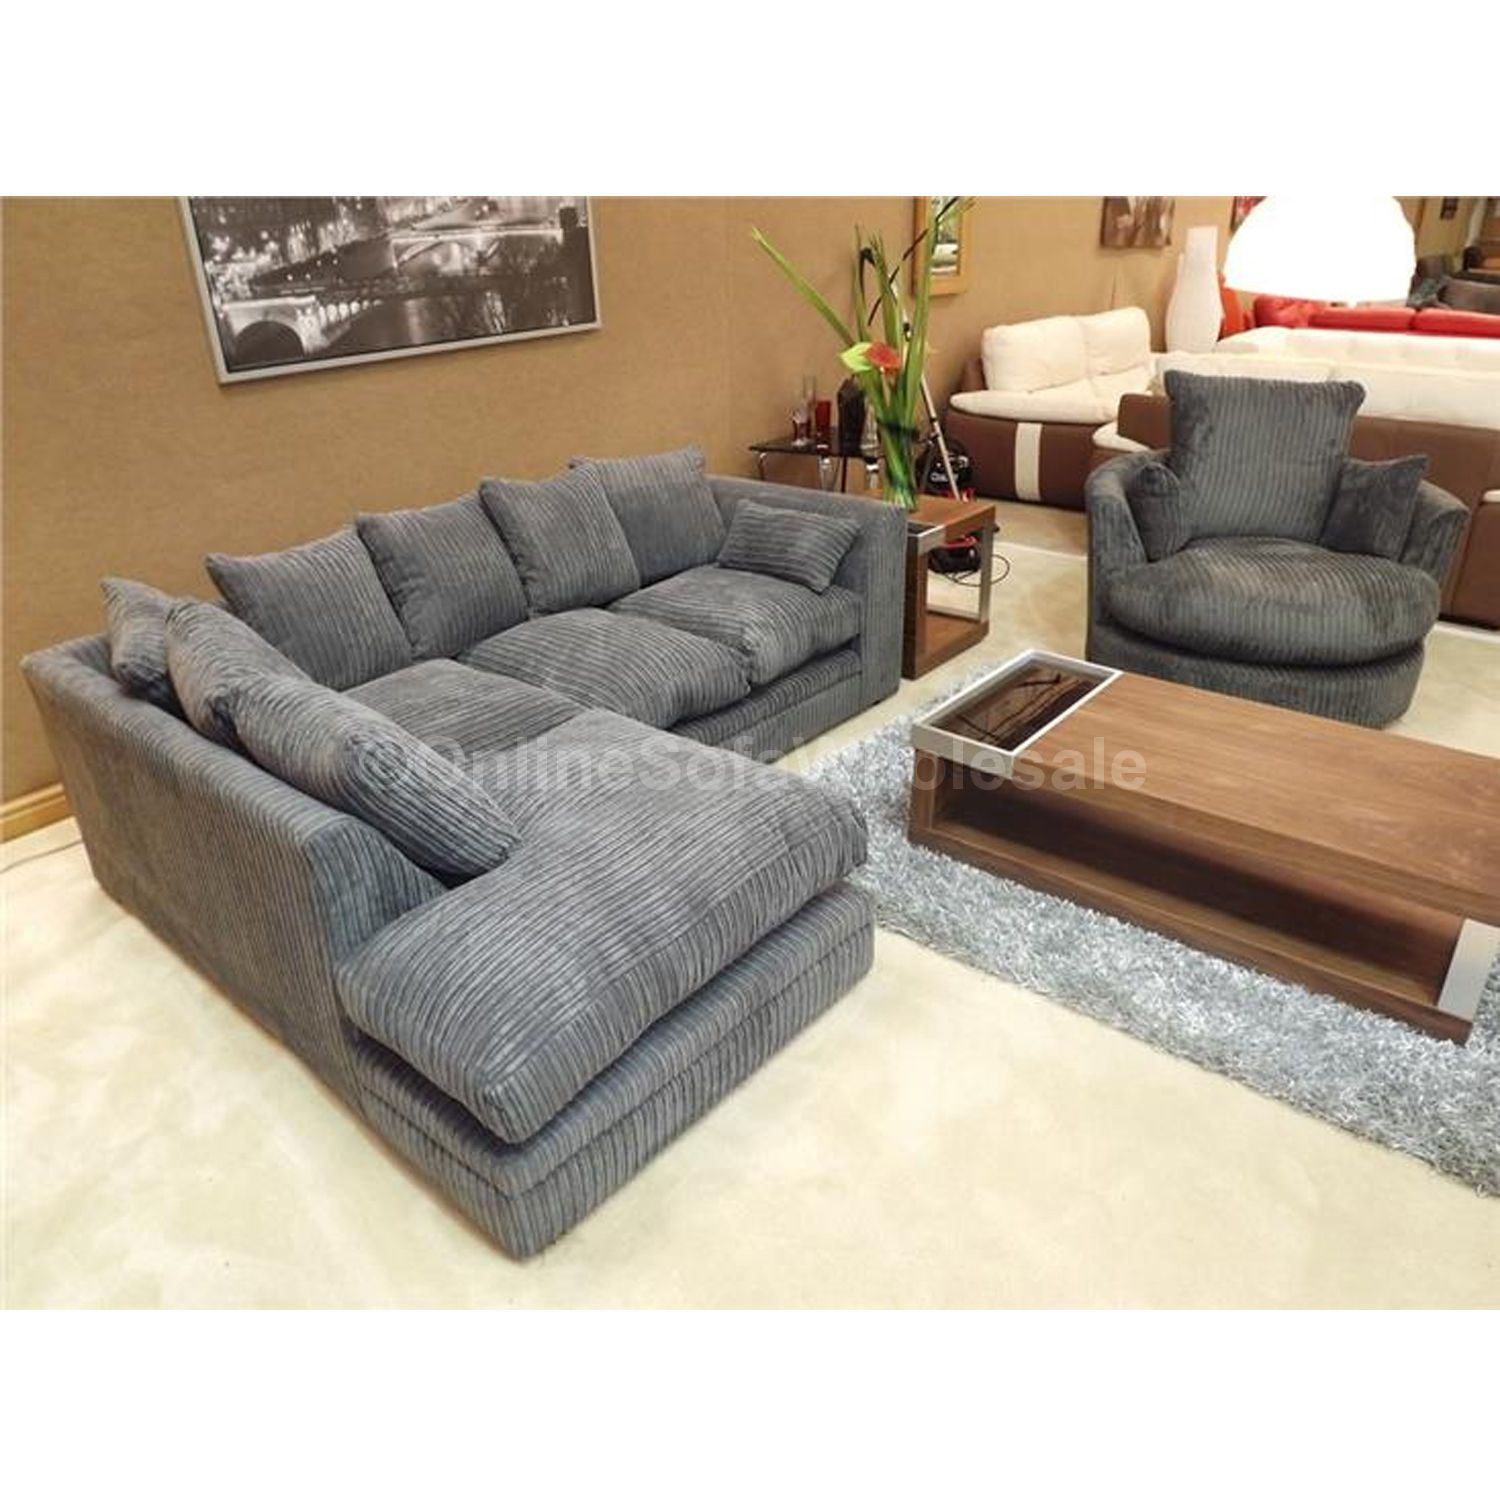 Sofology Sofas Dorchester Details About Dylan Corner Sofa Left Hand Plus Swivel Chair All